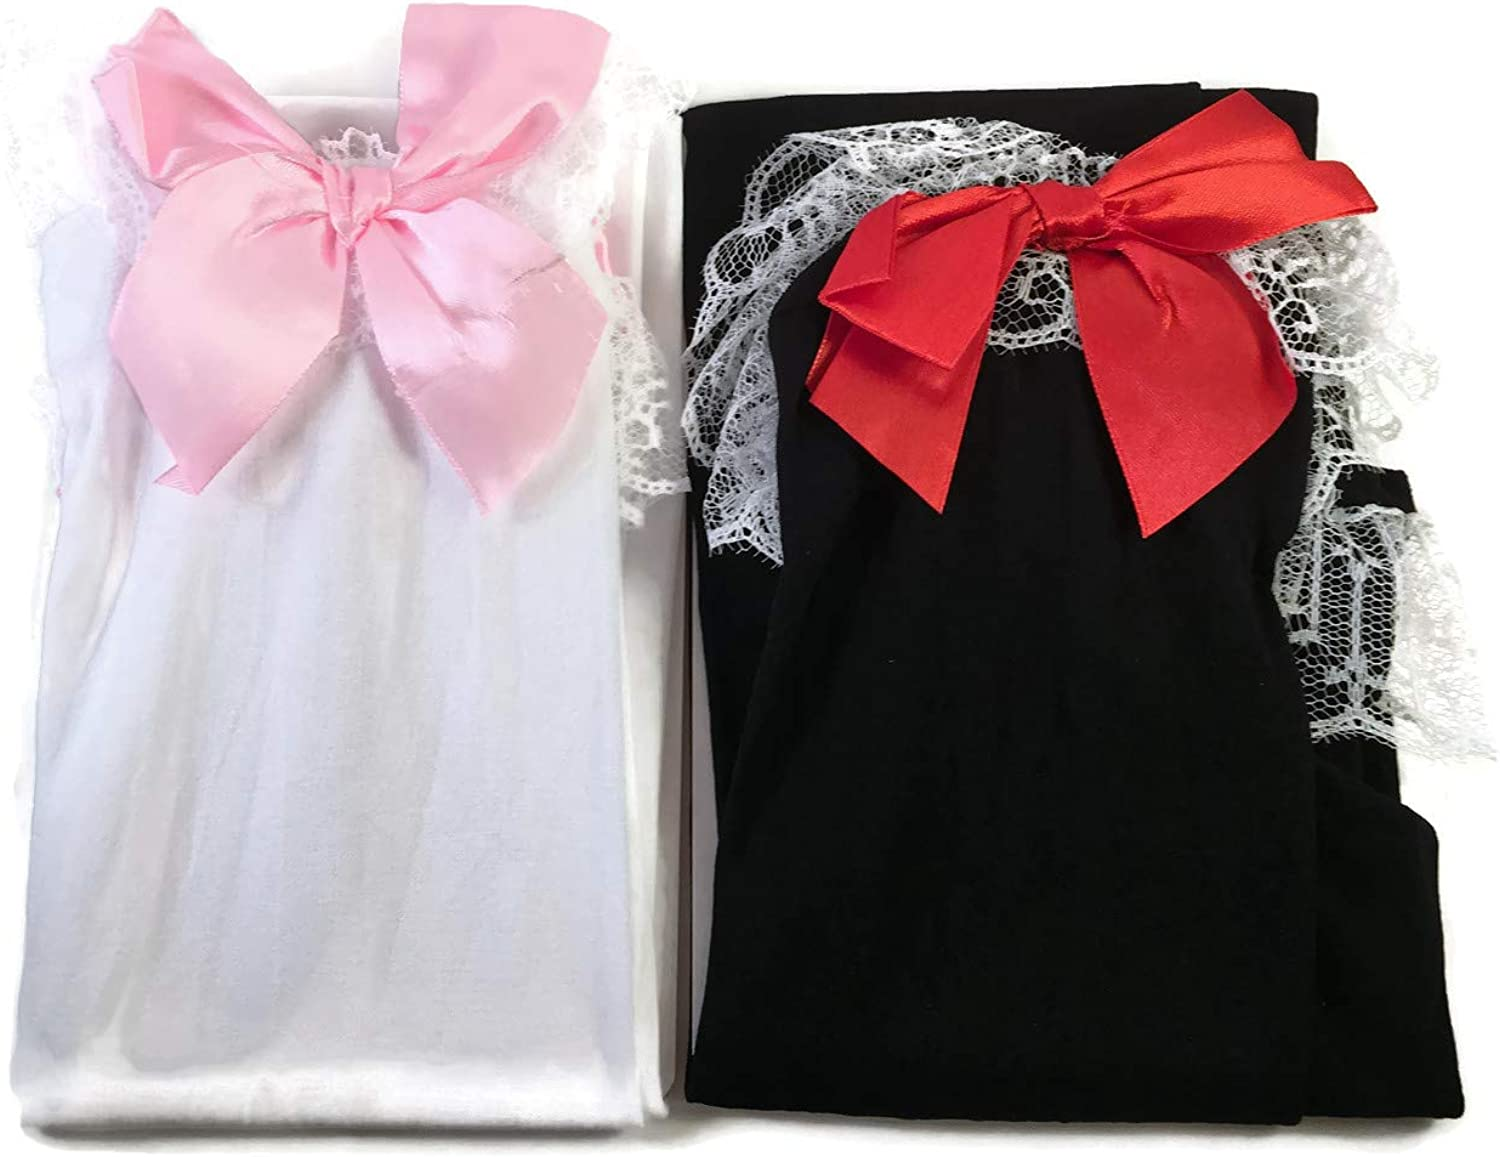 NEW GIRLS LADIES KNEE HIGH SOCKS WITH RED BOW BLACK /& WHITE BOW